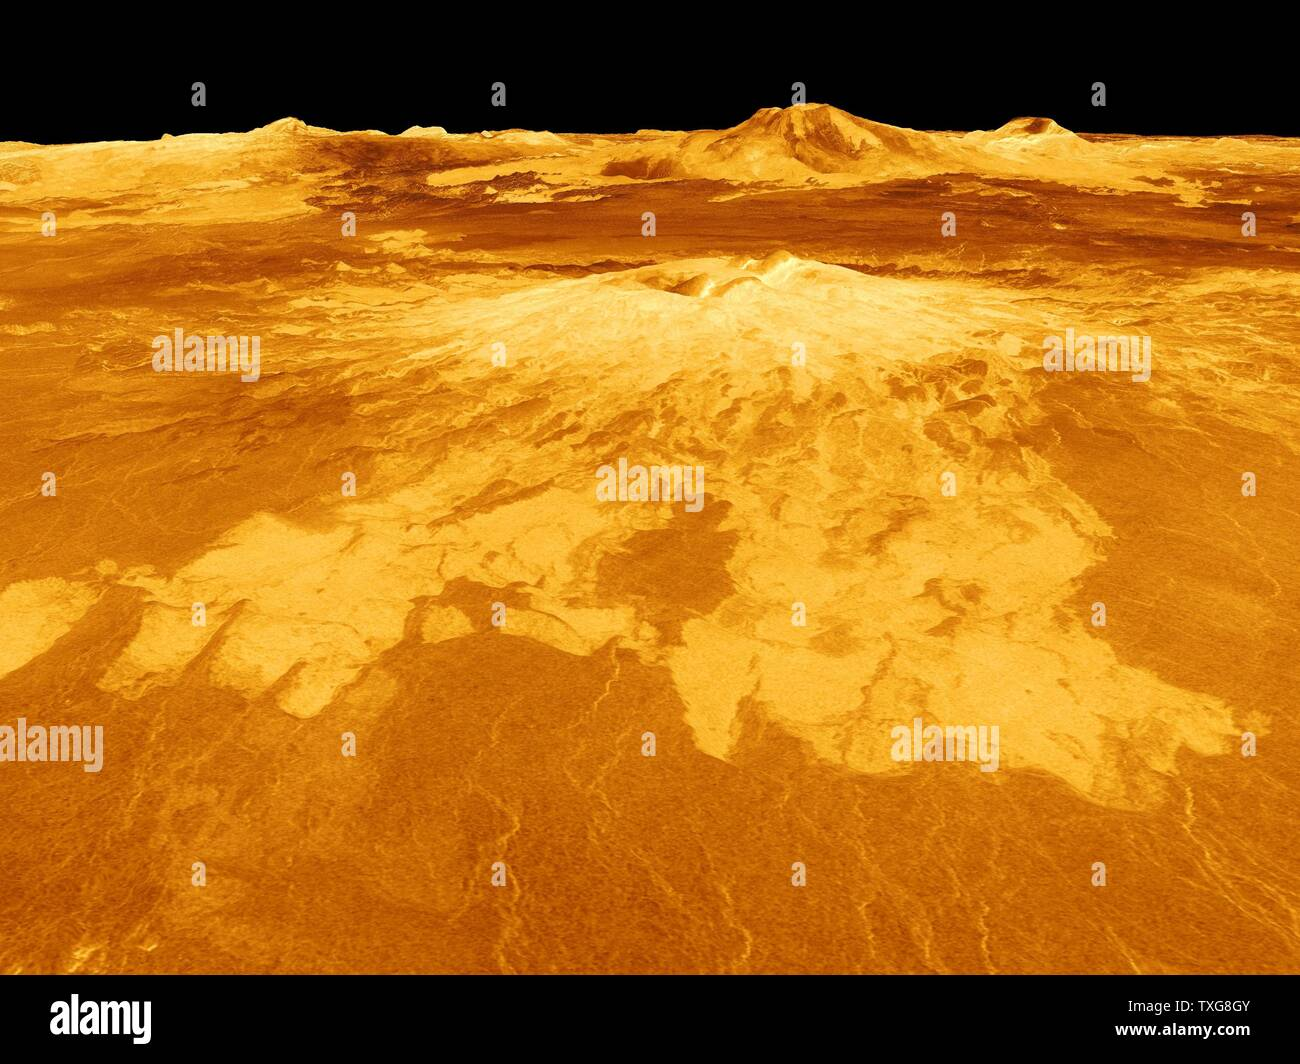 Computer-generated view of surface of the planet Venus dominated by the volcano Sapas Mons.  Lava flows extend for hundreds of kilometres across the fractured plains shown in the foreground Credit NASA - Stock Image